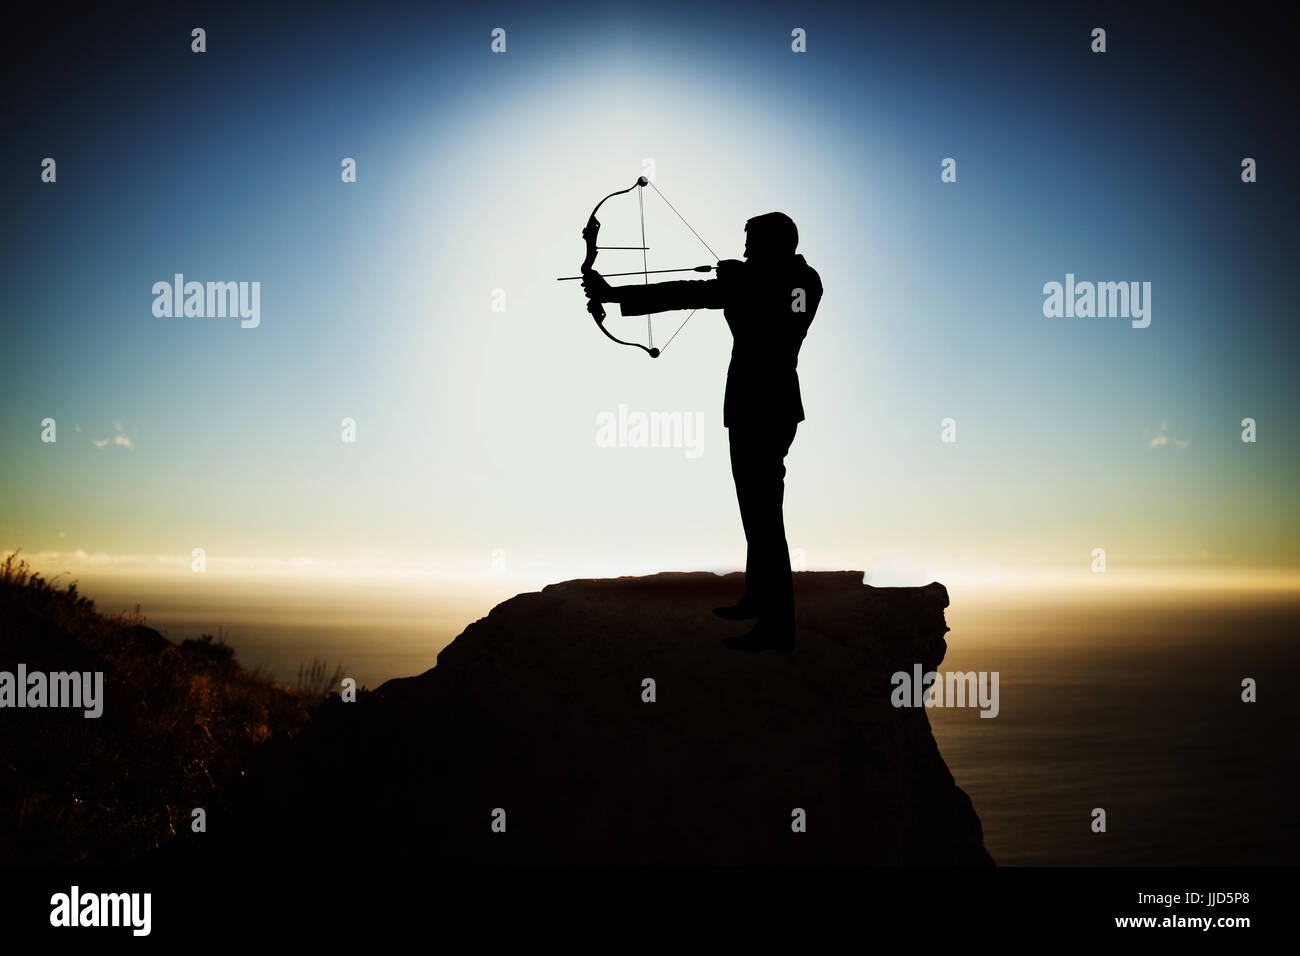 Silhouette businessman taking aim with bow and arrow  against scenic view of mountain by sea against sky - Stock Image